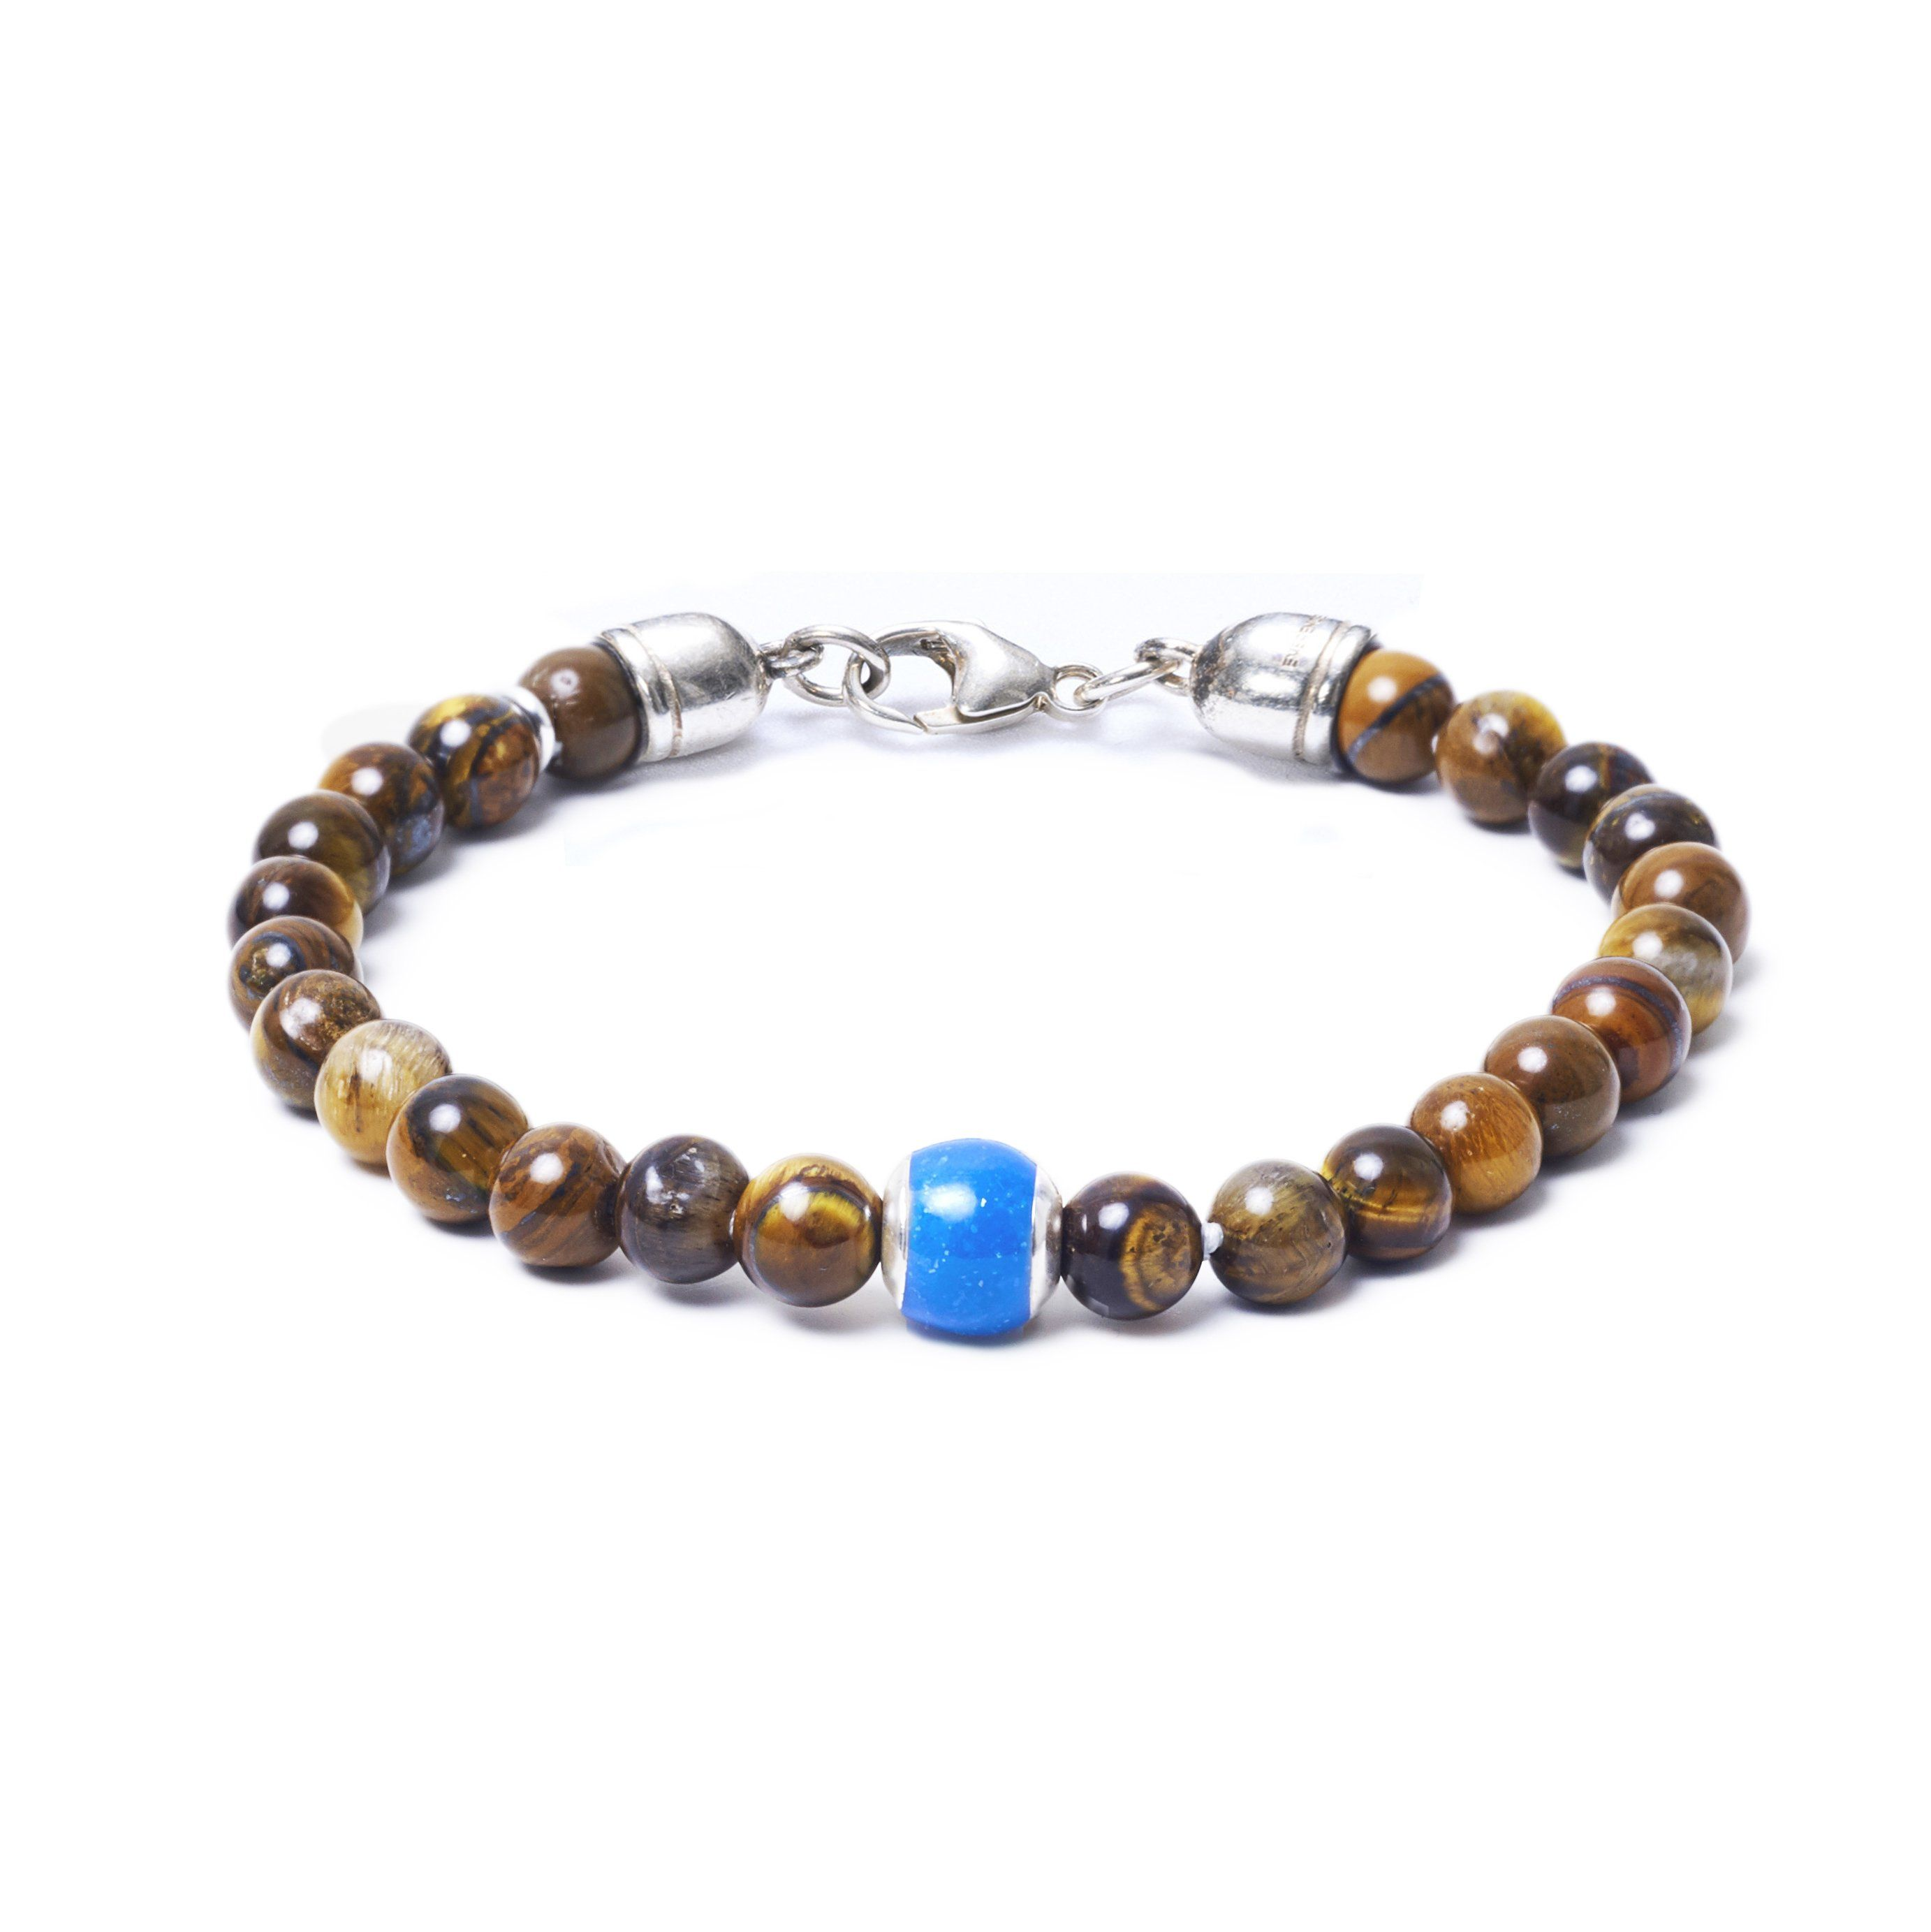 Tiger Eye, One Everence Bead